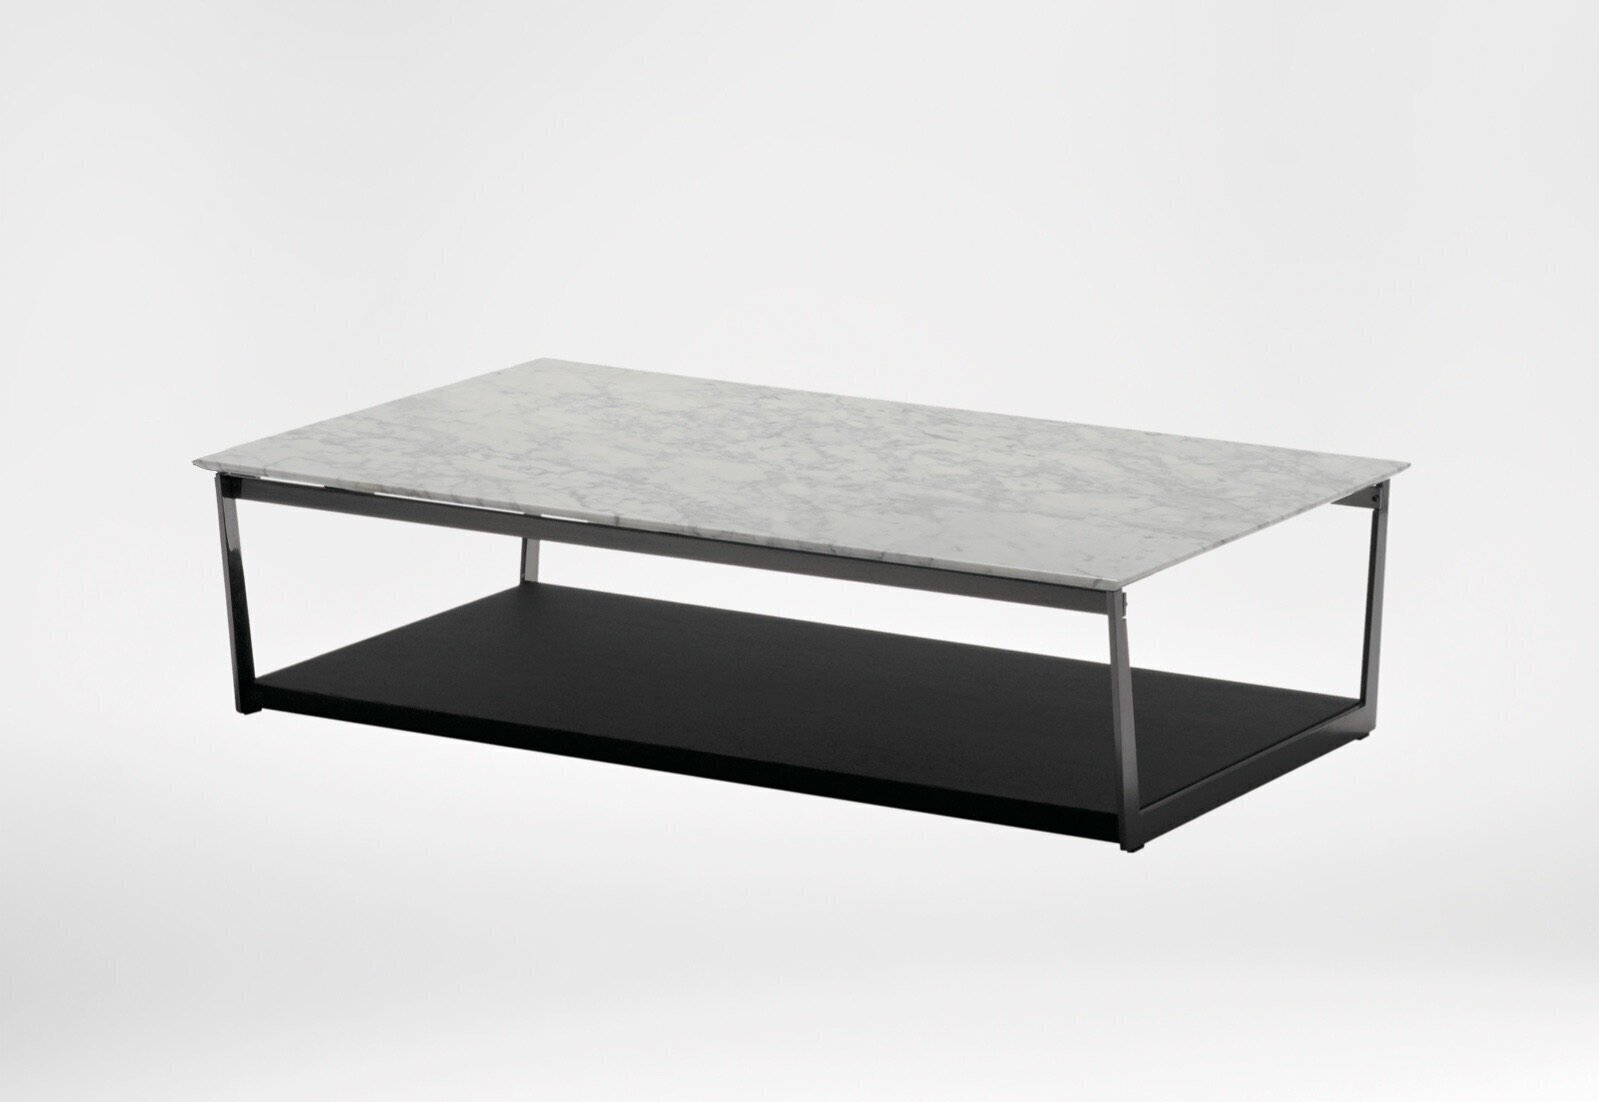 Element coffee table - The finest Carrera marble with the cool modernity of metallic black steel to create a unique piece that is timeless in its clean simplicity.